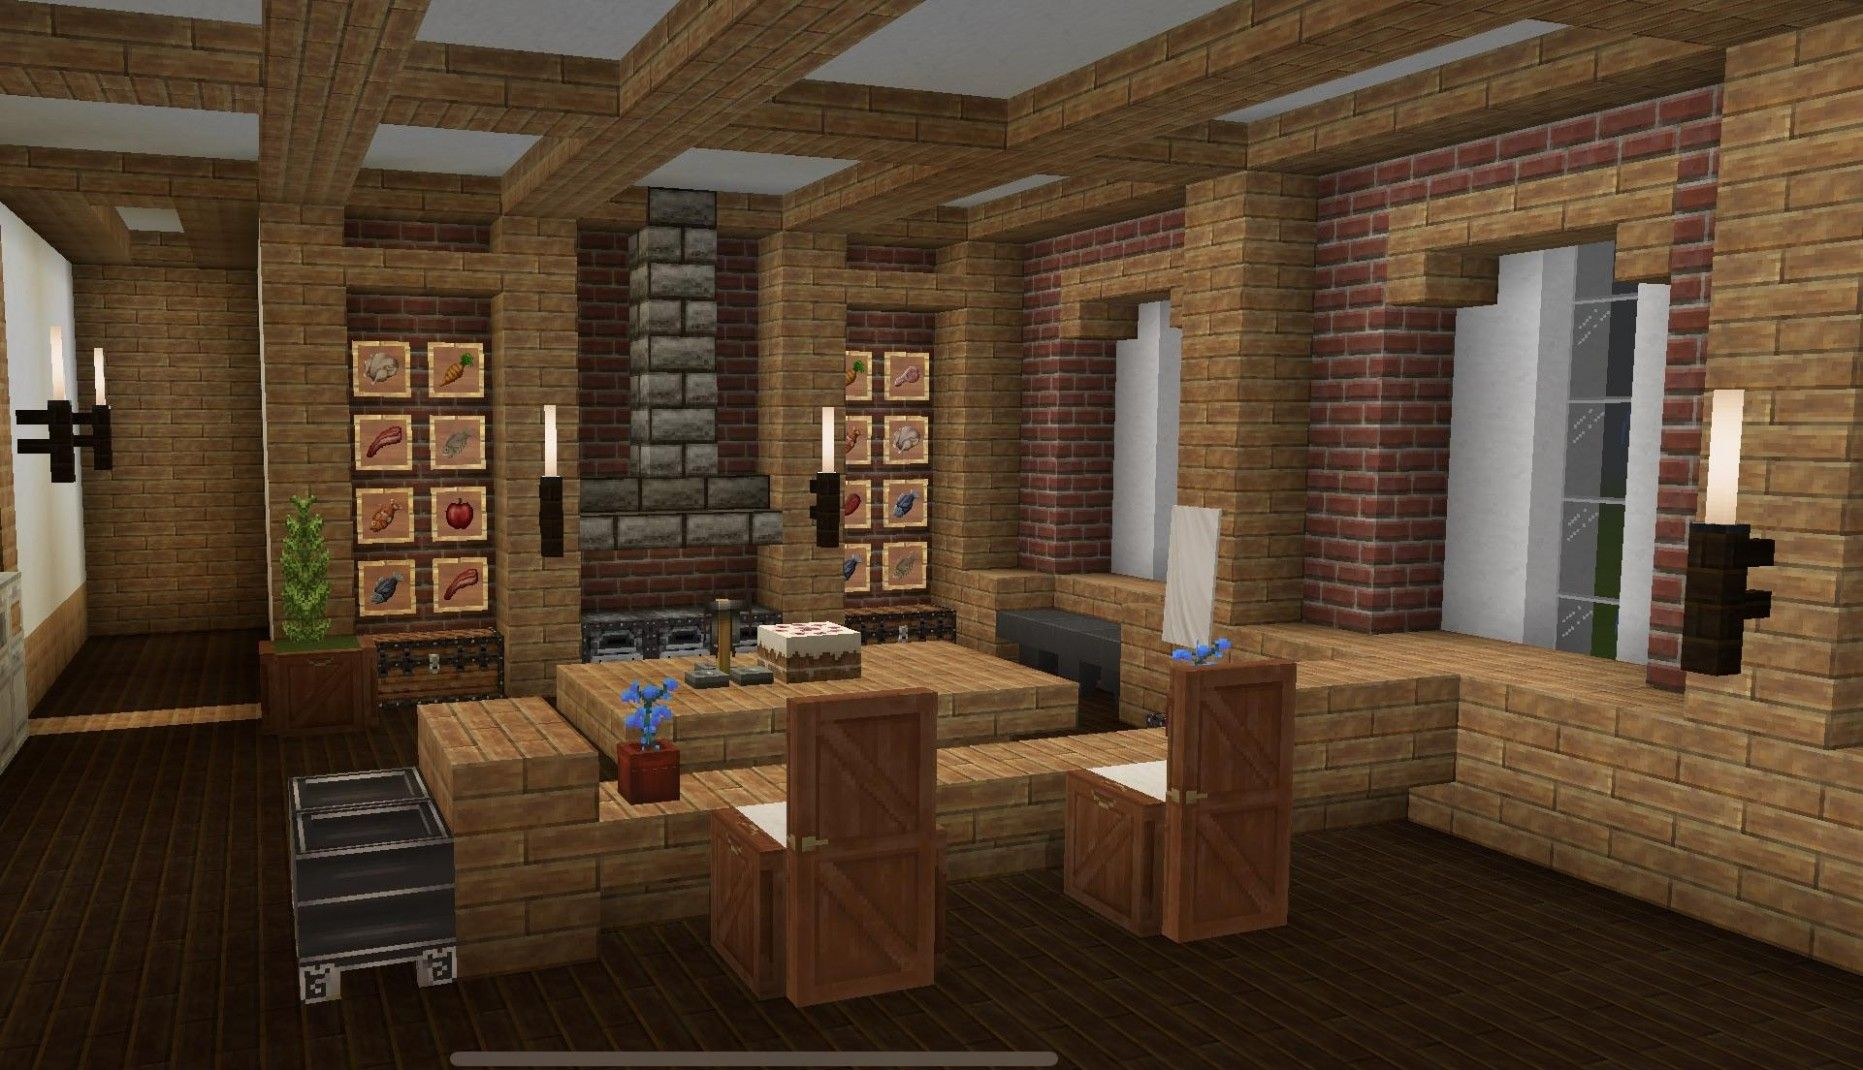 Minecraft Kitchen Ideas Minimal Kitchen Design Minecraft Kitchen Ideas Simple Kitchen Design